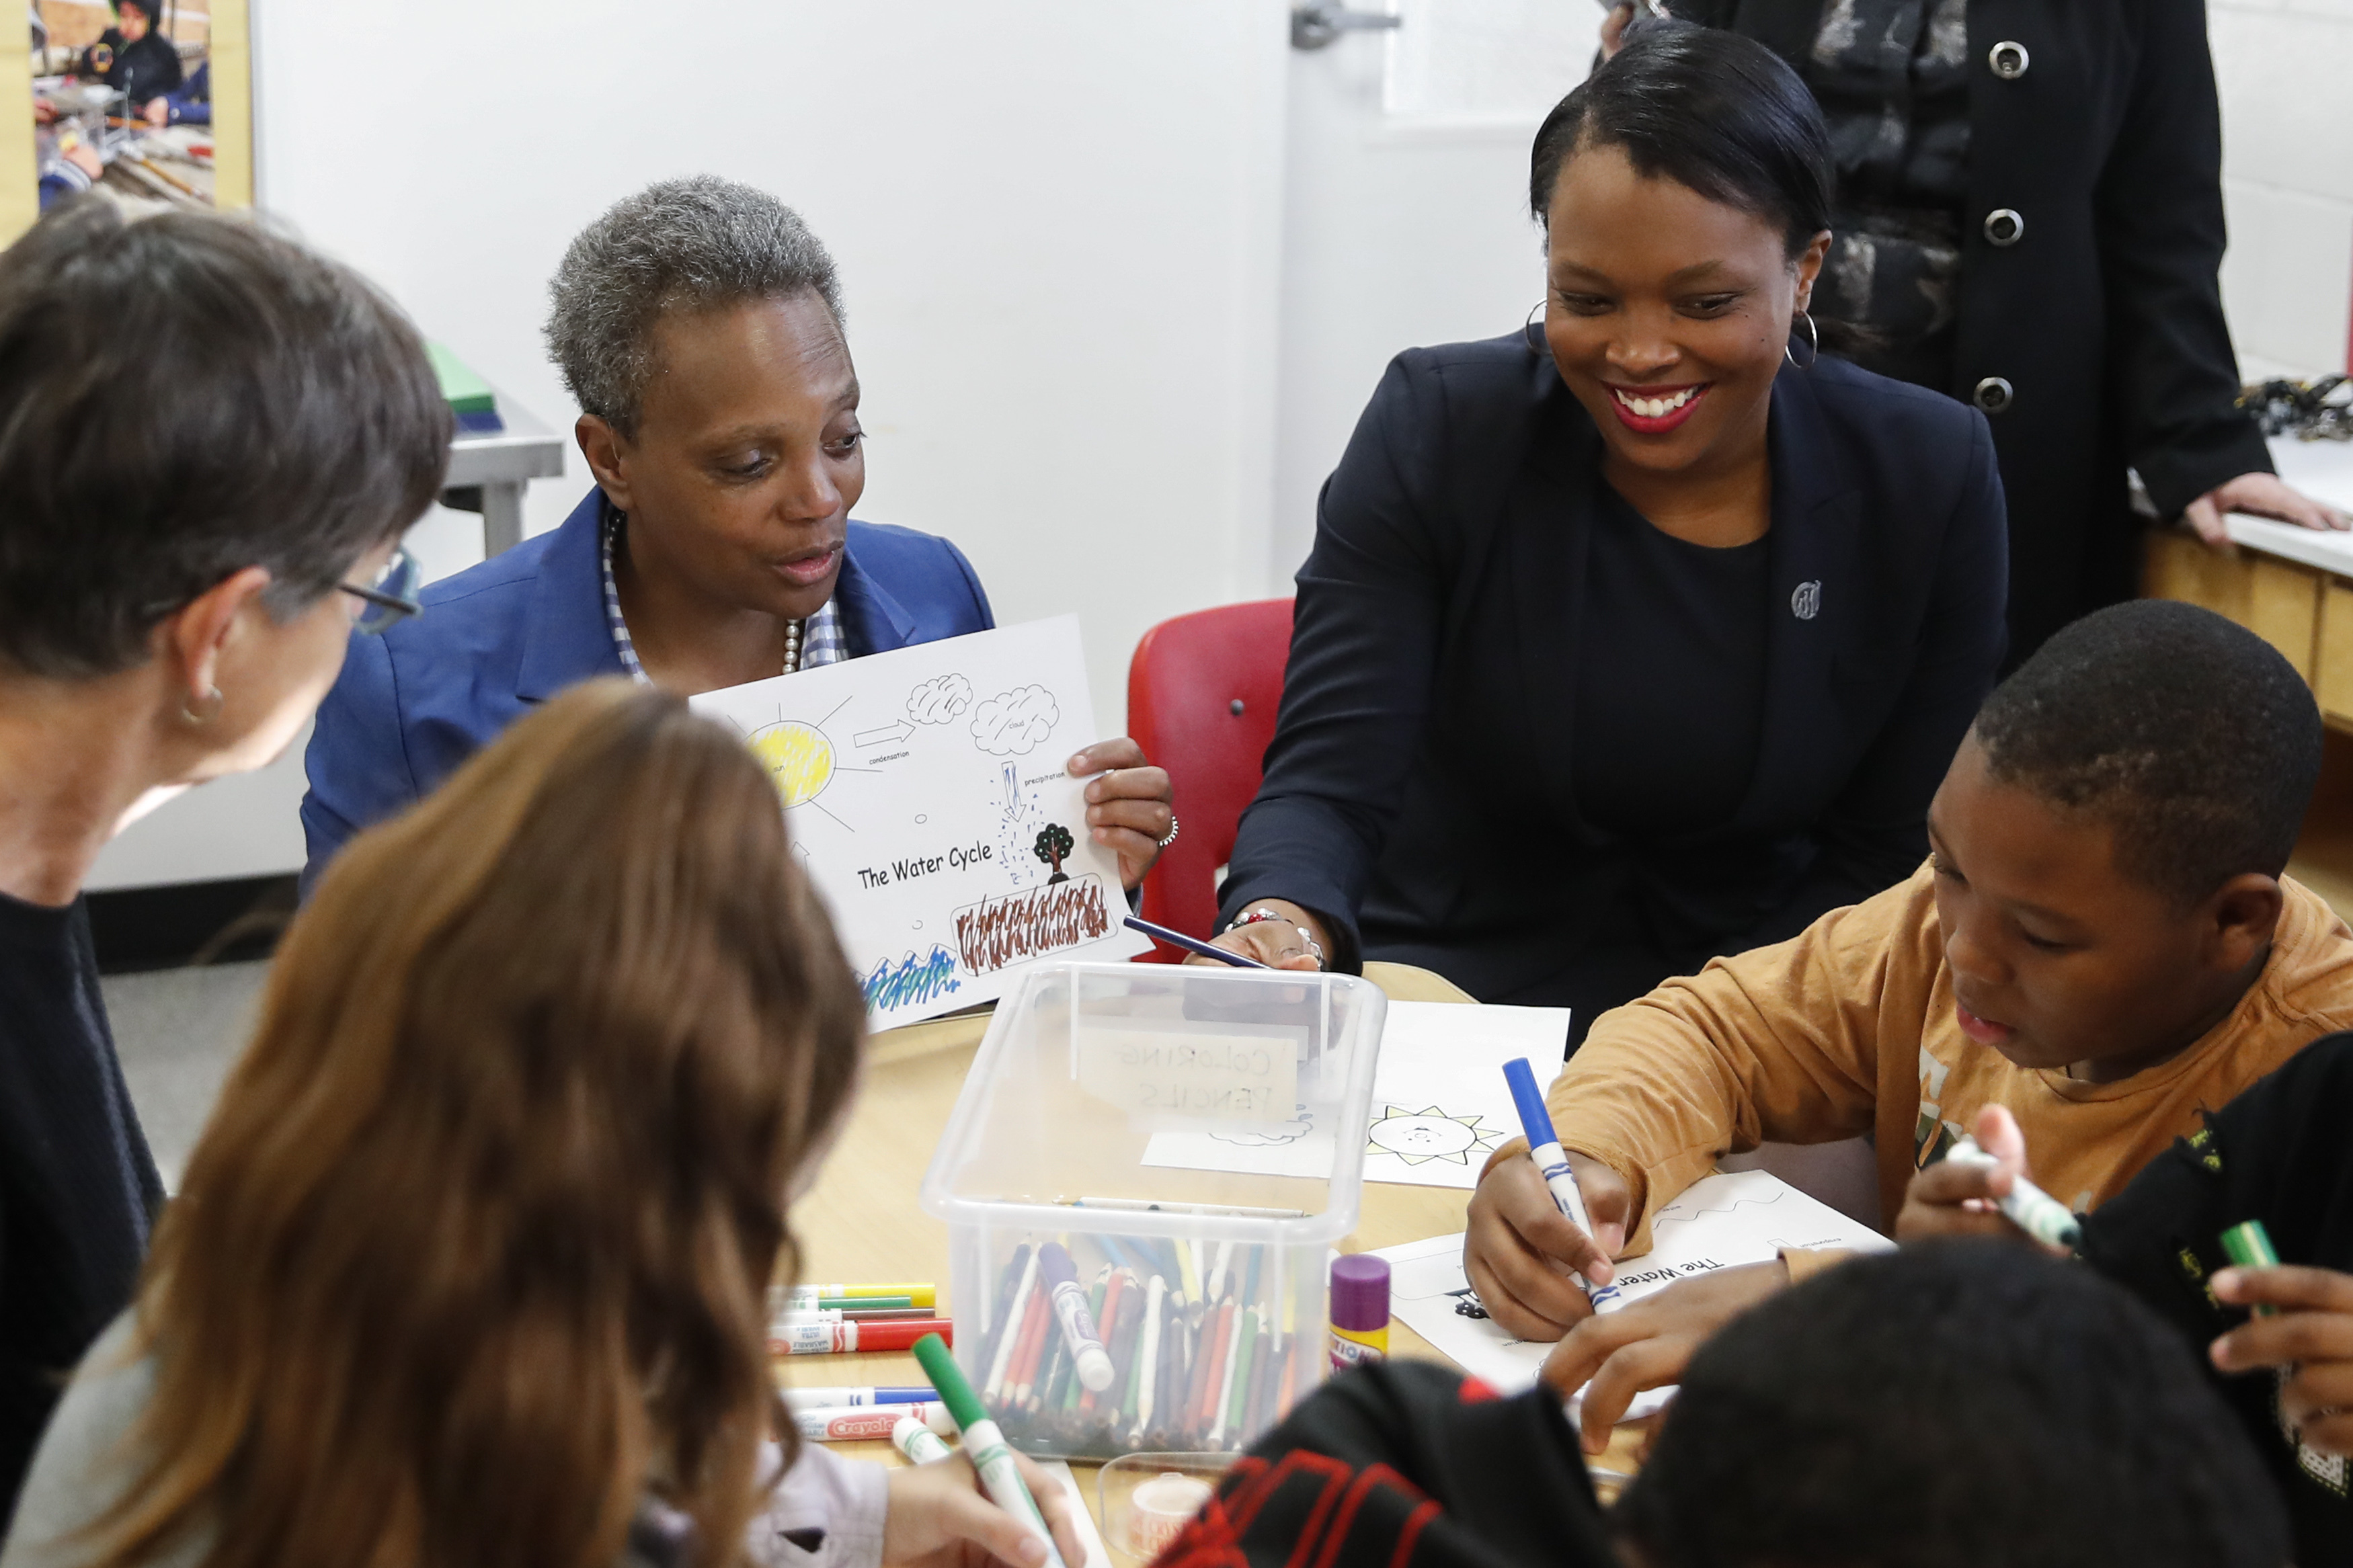 Janice Jackson sits next to Mayor Lori Lightfoot at a table with students.